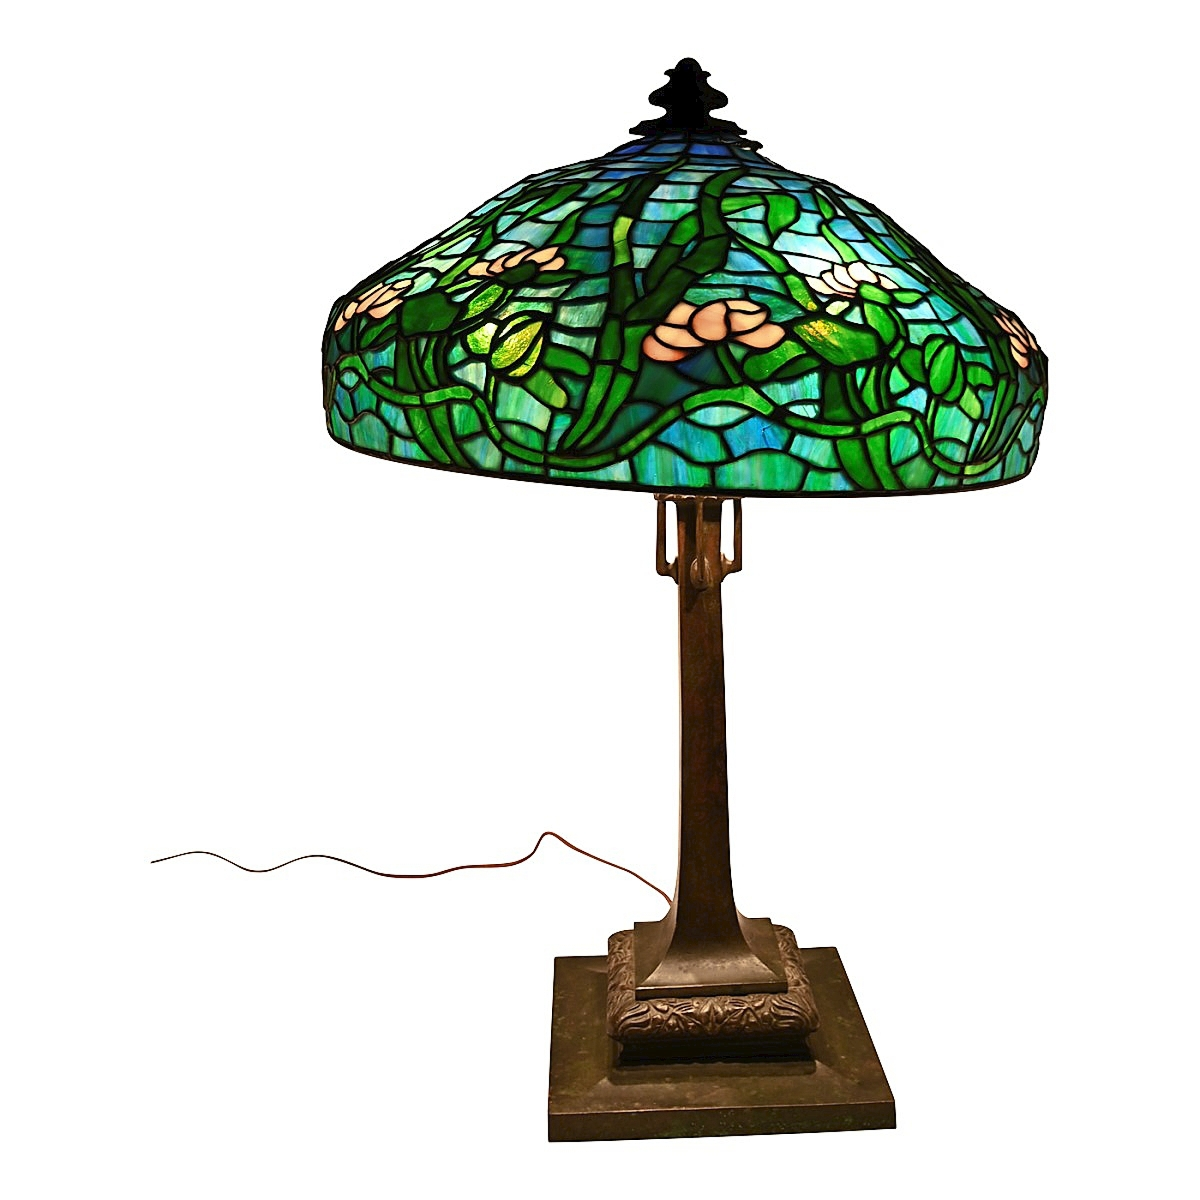 Lamp by AB Michaan